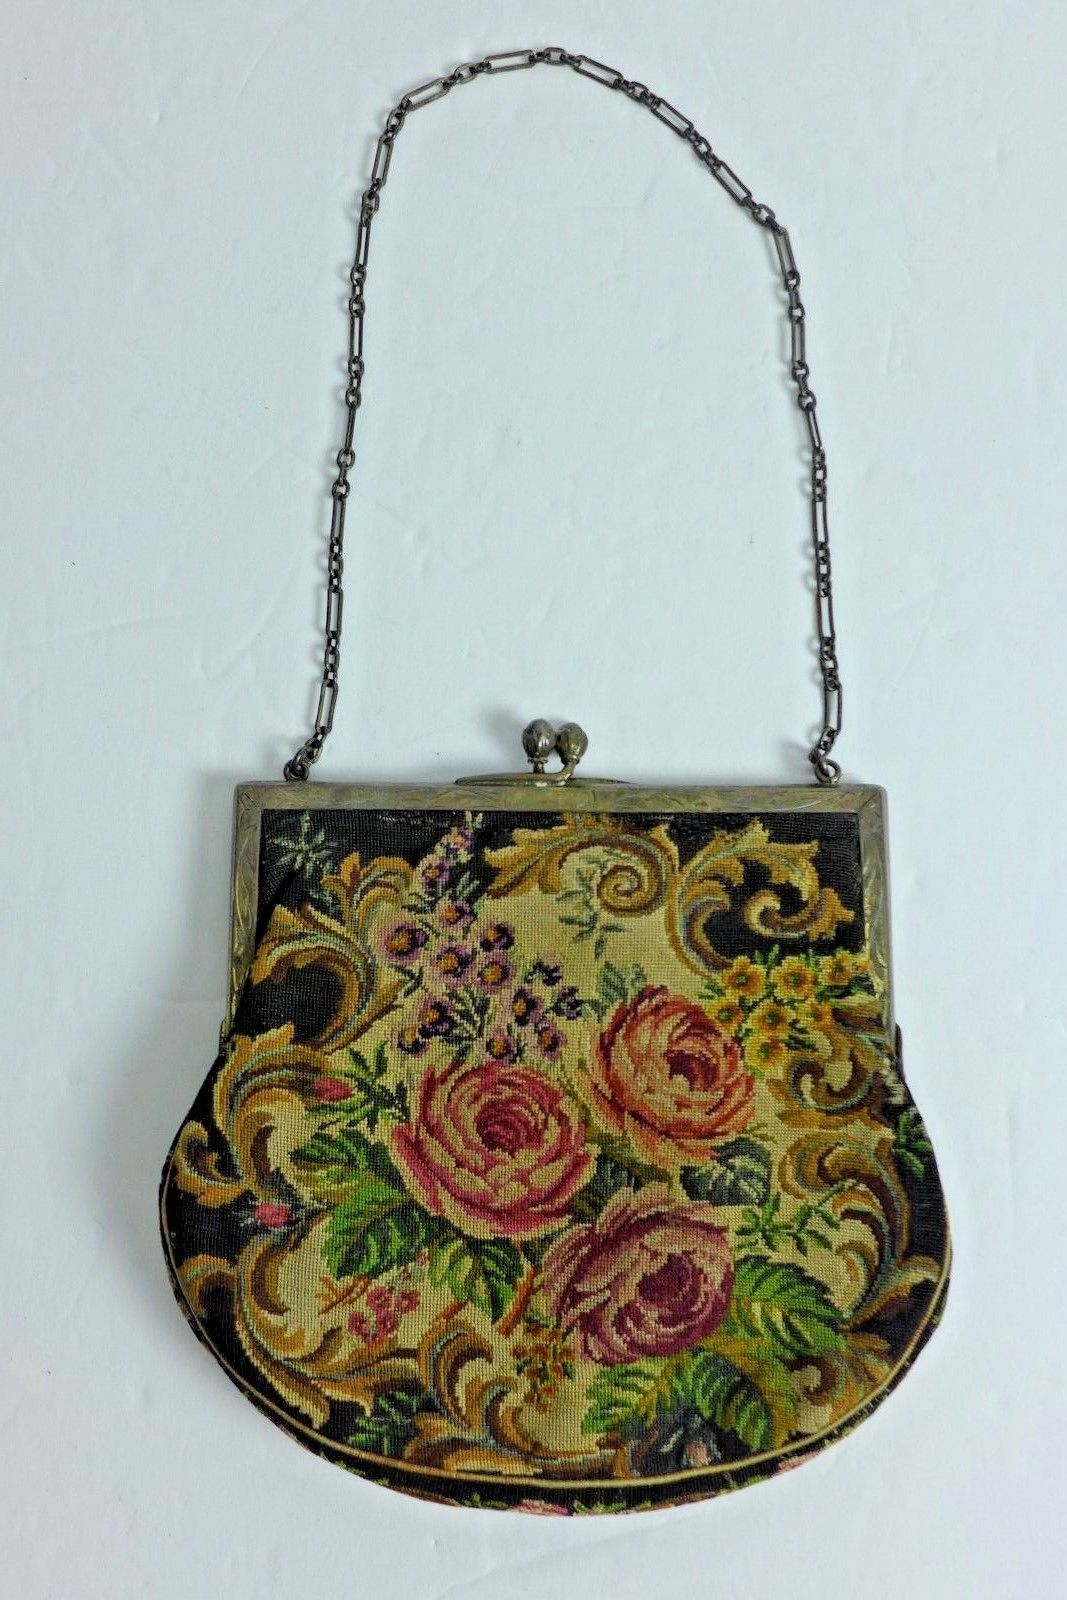 ad9dd844fcf1 Antique Petit Point Needlework Tapestry Small Evening Bag Floral | eBay